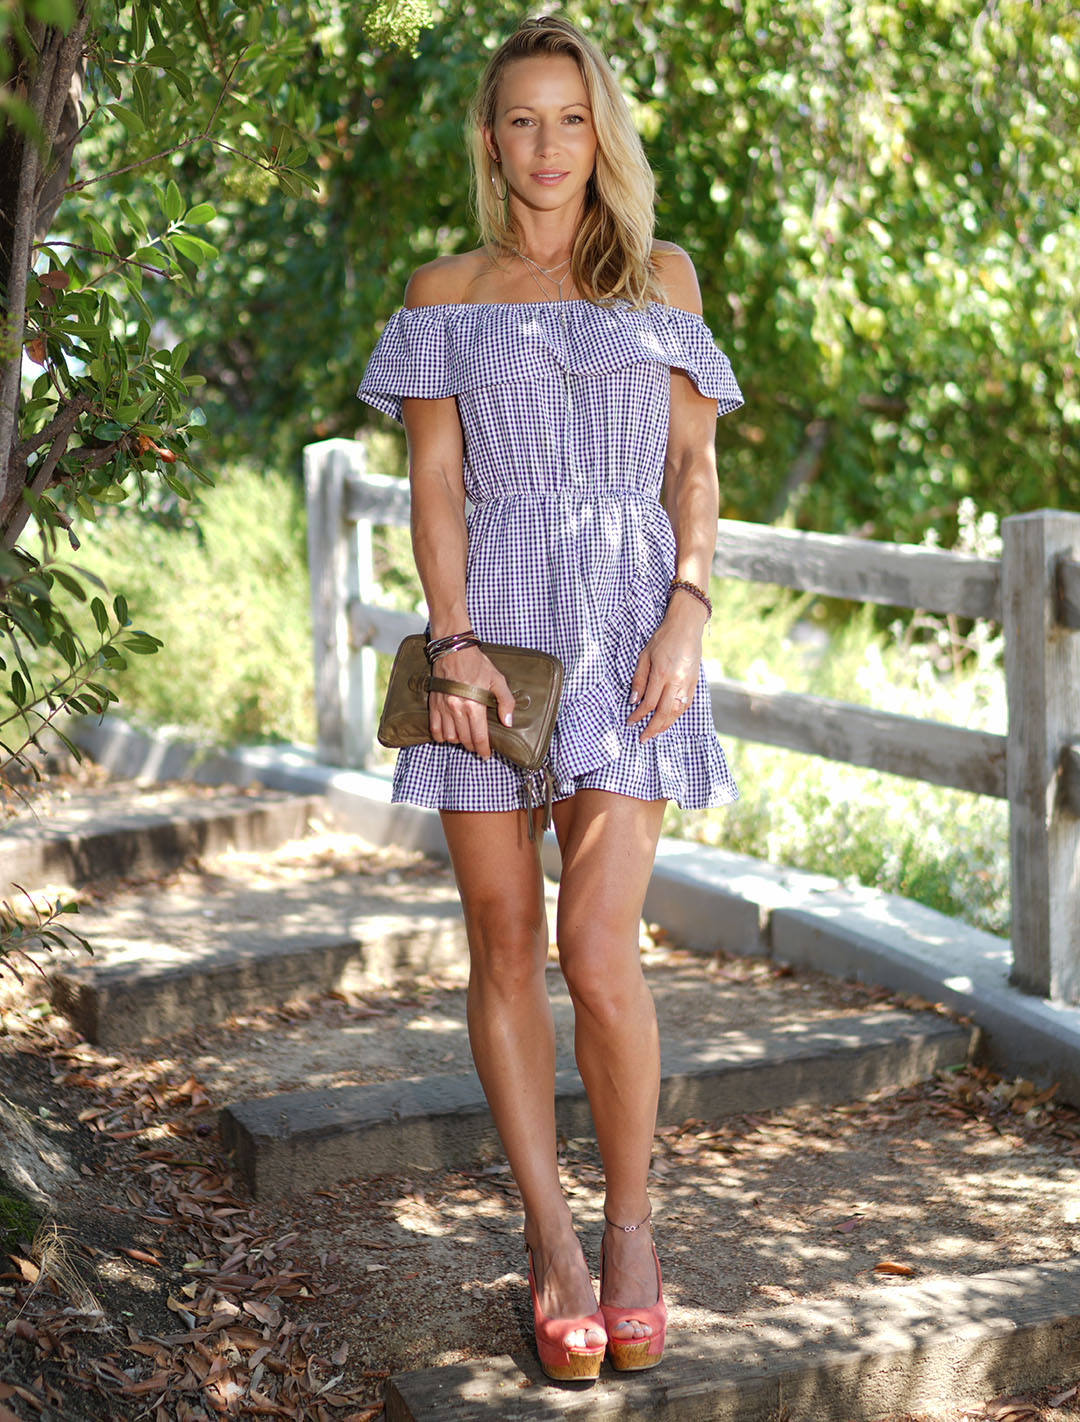 Summer Dress From Revolve To help you find your ultimate 2020 summer dress, we've picked some of our favorite affordable styles whether you're looking for 20 cute summer dresses that'll get you through the hottest days. summer dress from revolve